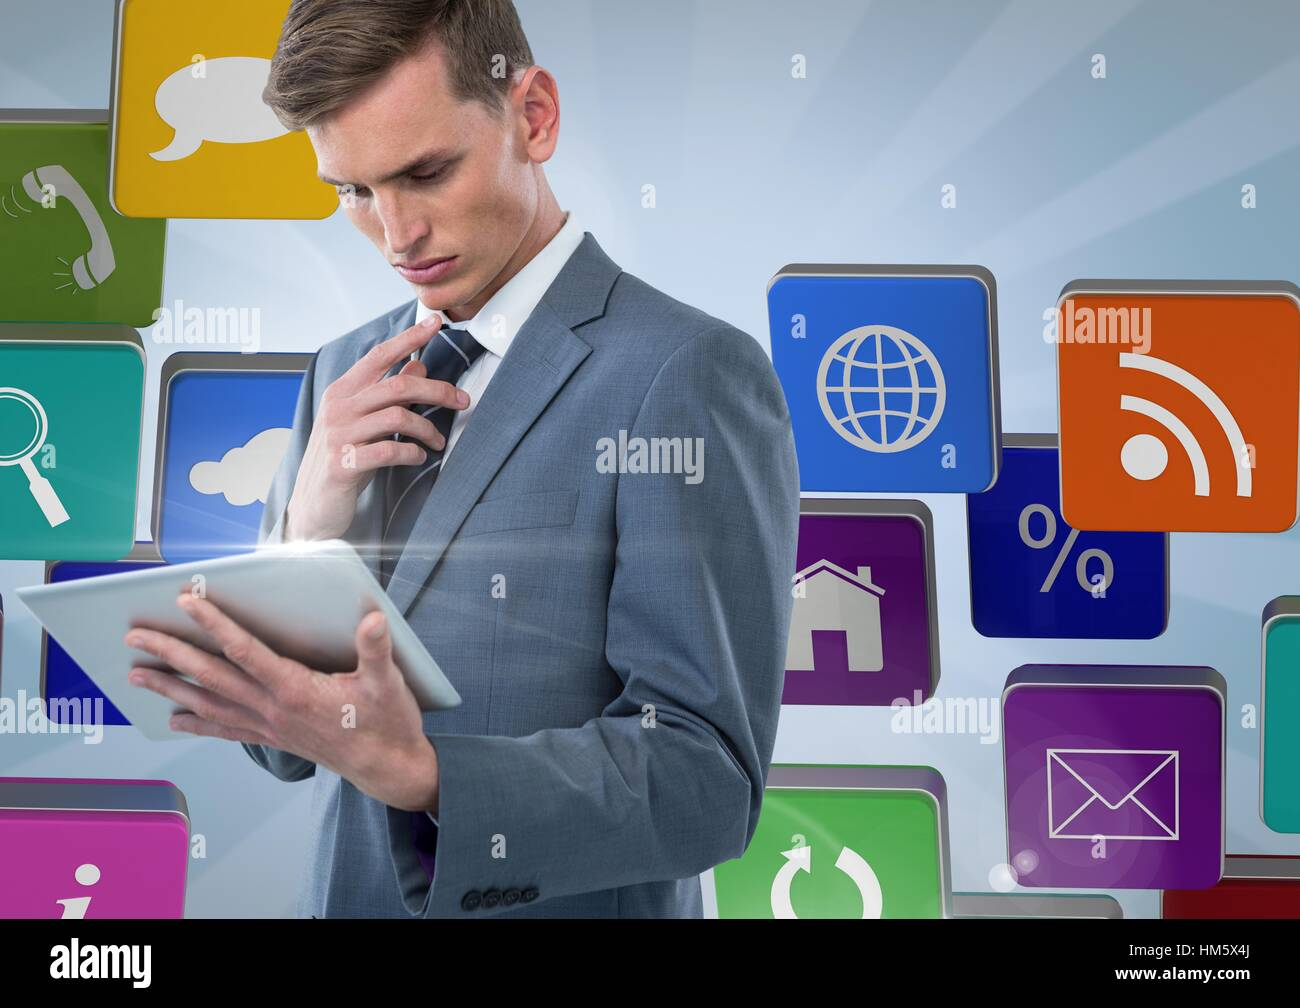 Businessman using tablet against applications icons Stock Photo